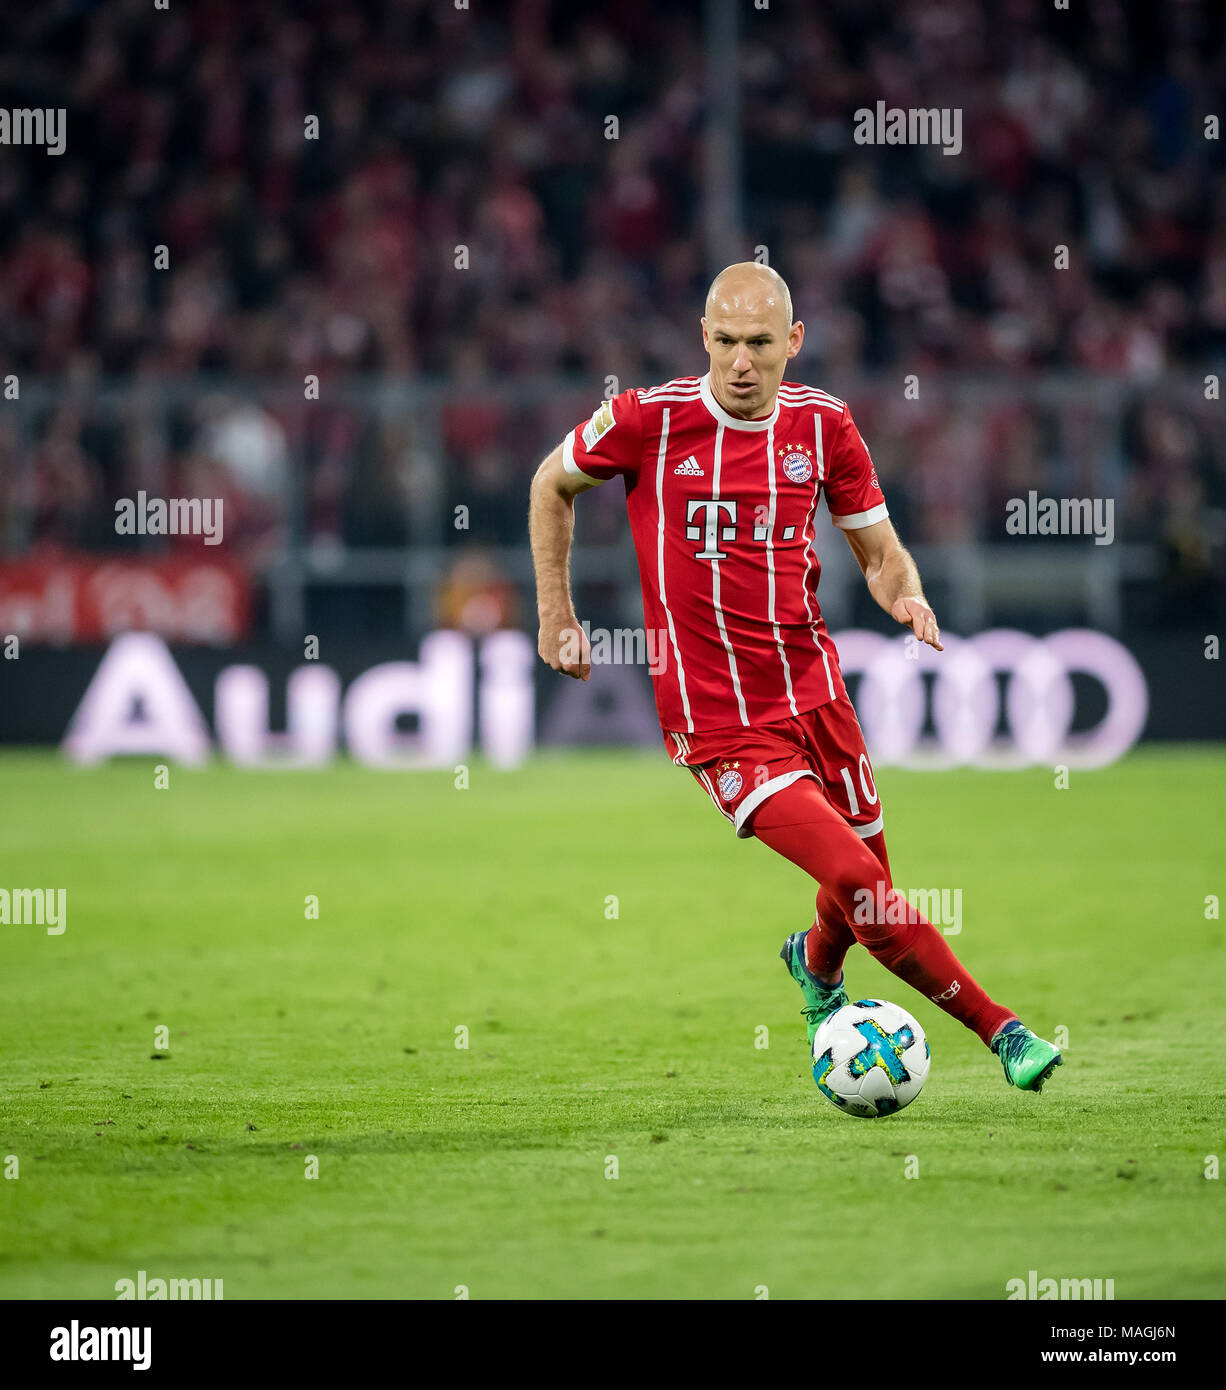 31 March 2018: Germany, Munich, Allianz Arena: Soccer 1. Bundesliga: FC Bayern Muenchen vs Borussia Dortmund: Muenchen's Arjen Robben after the ball in front of an Audi advertising board. - NO WIRE SERVICE- Photo: Thomas Eisenhuth/dpa-Zentralbild/ZB - Stock Image